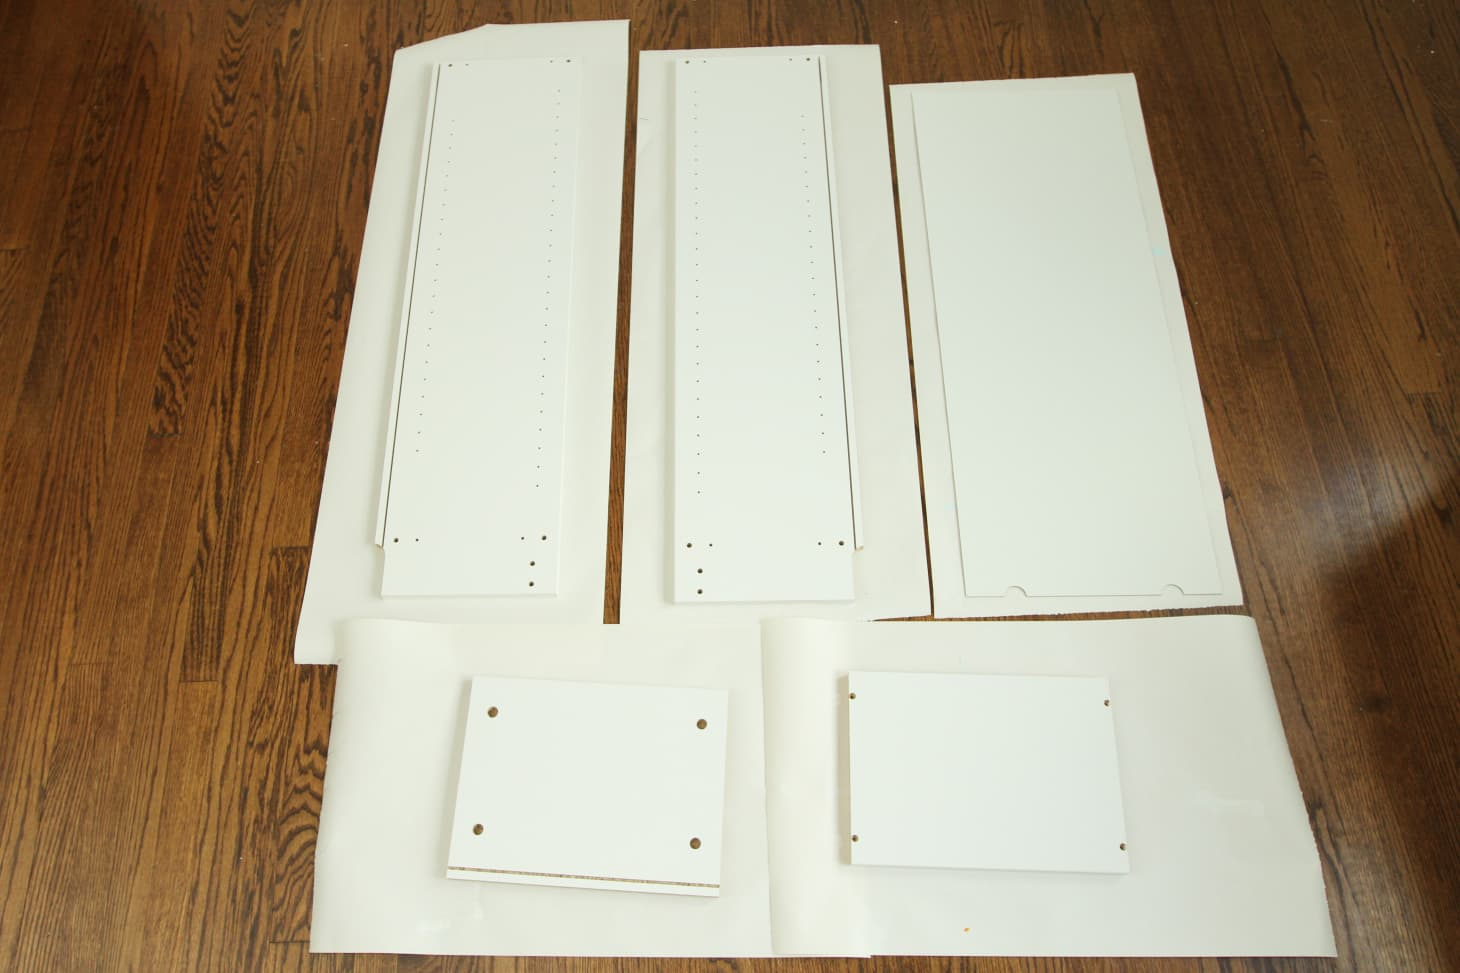 How to Paint Laminate IKEA Furniture the Right Way | Apartment Therapy